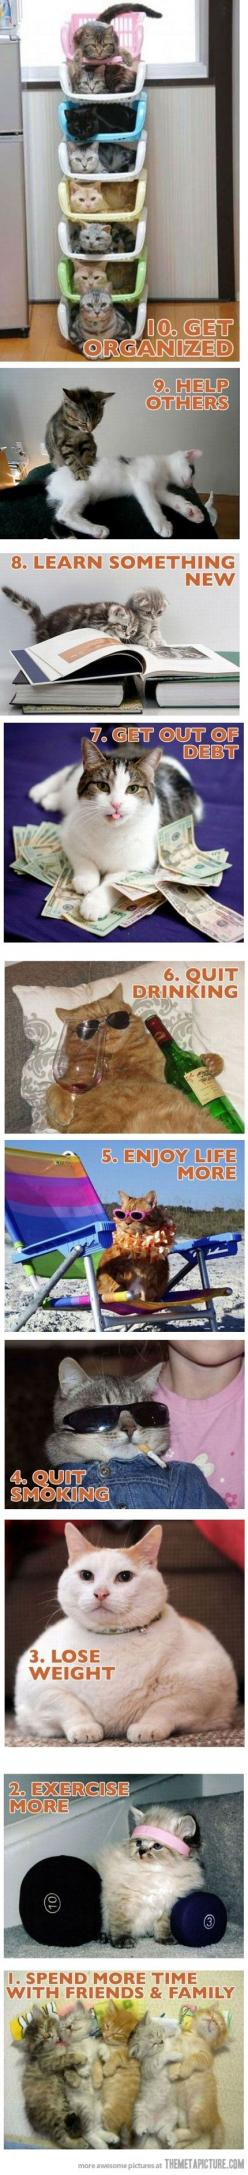 New year resolutions with cats For more New Years cats, visit https://www.facebook.com/funholidaycats: Cats, Year Resolutions, Years Resolutions, Funny Stuff, New Years, New Year'S Resolutions, Cat Lady, Animal